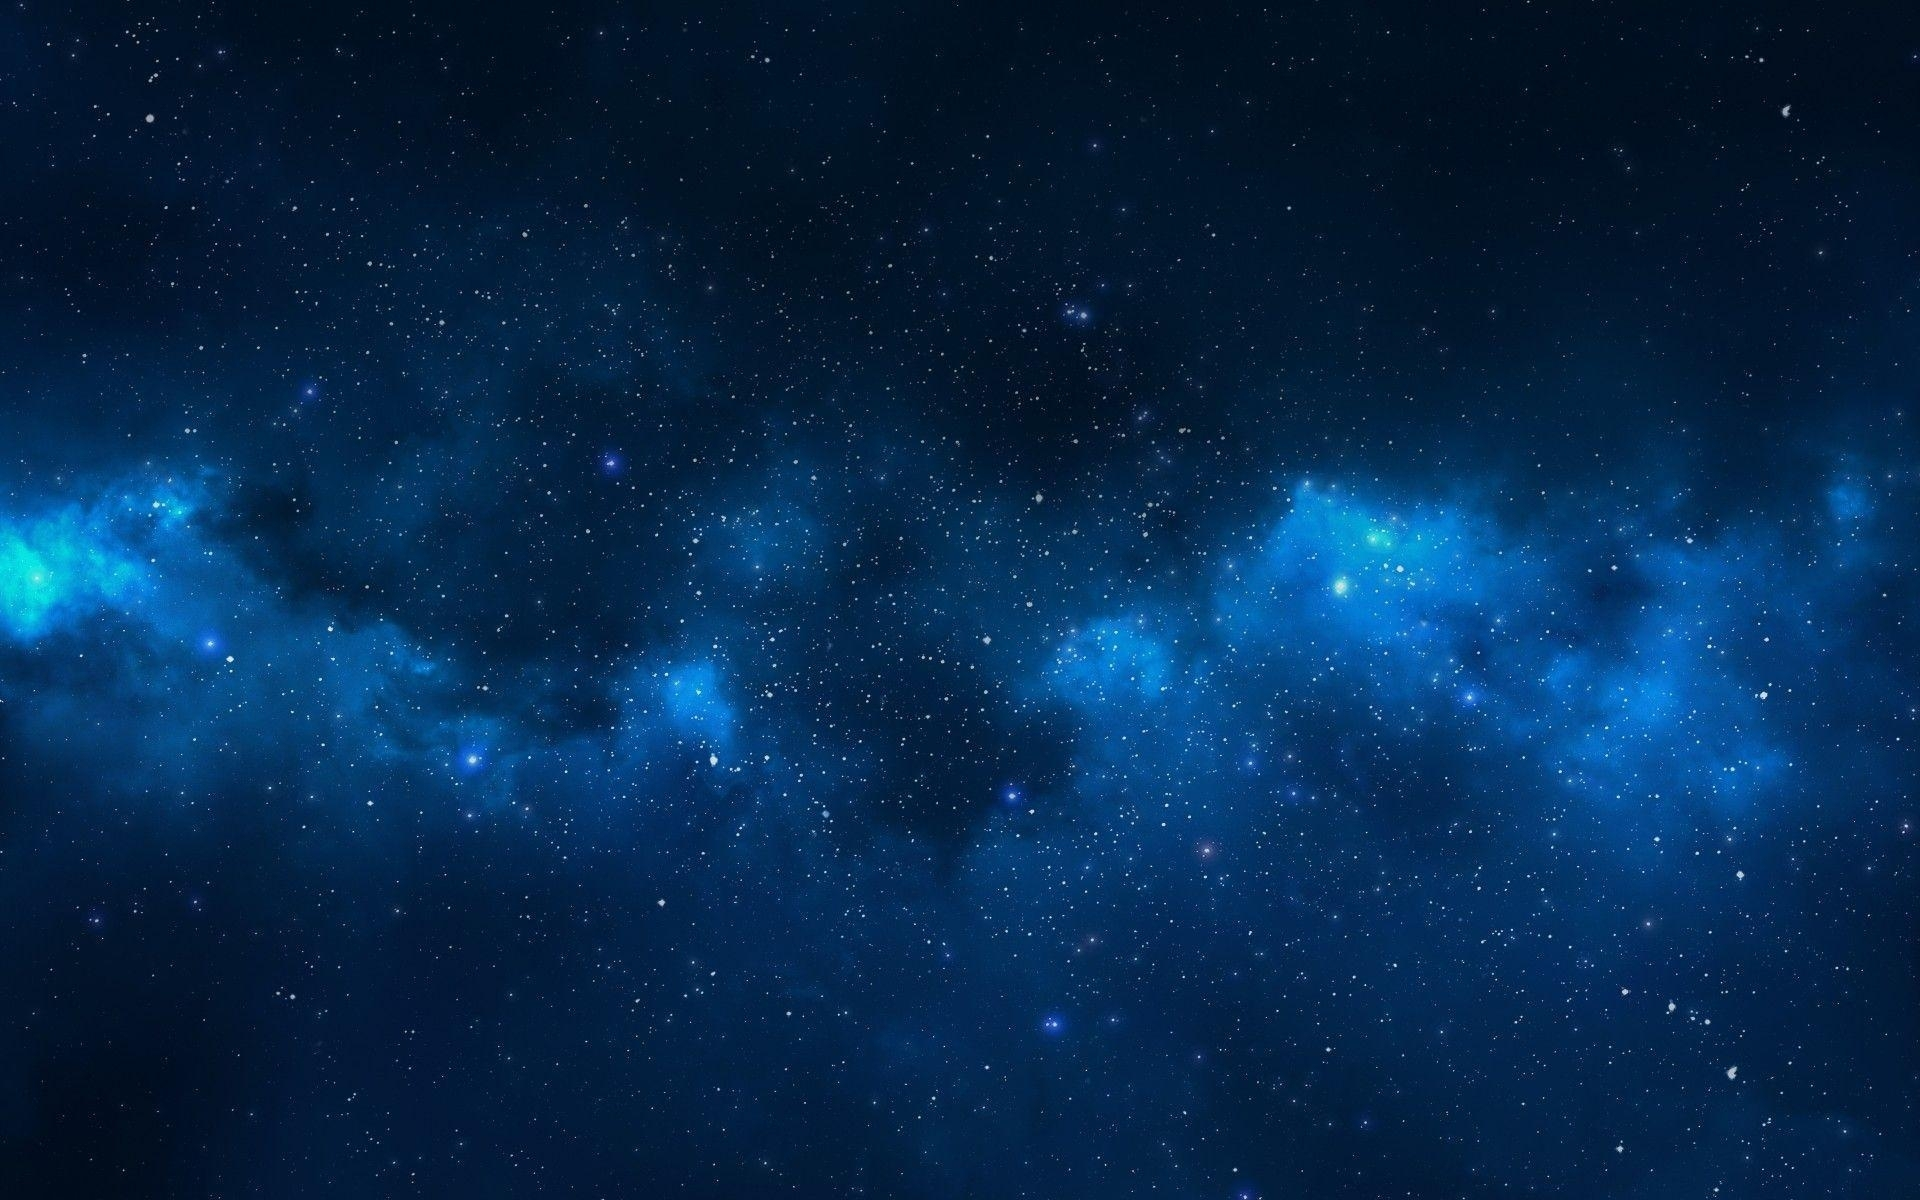 night sky backgrounds - wallpaper cave